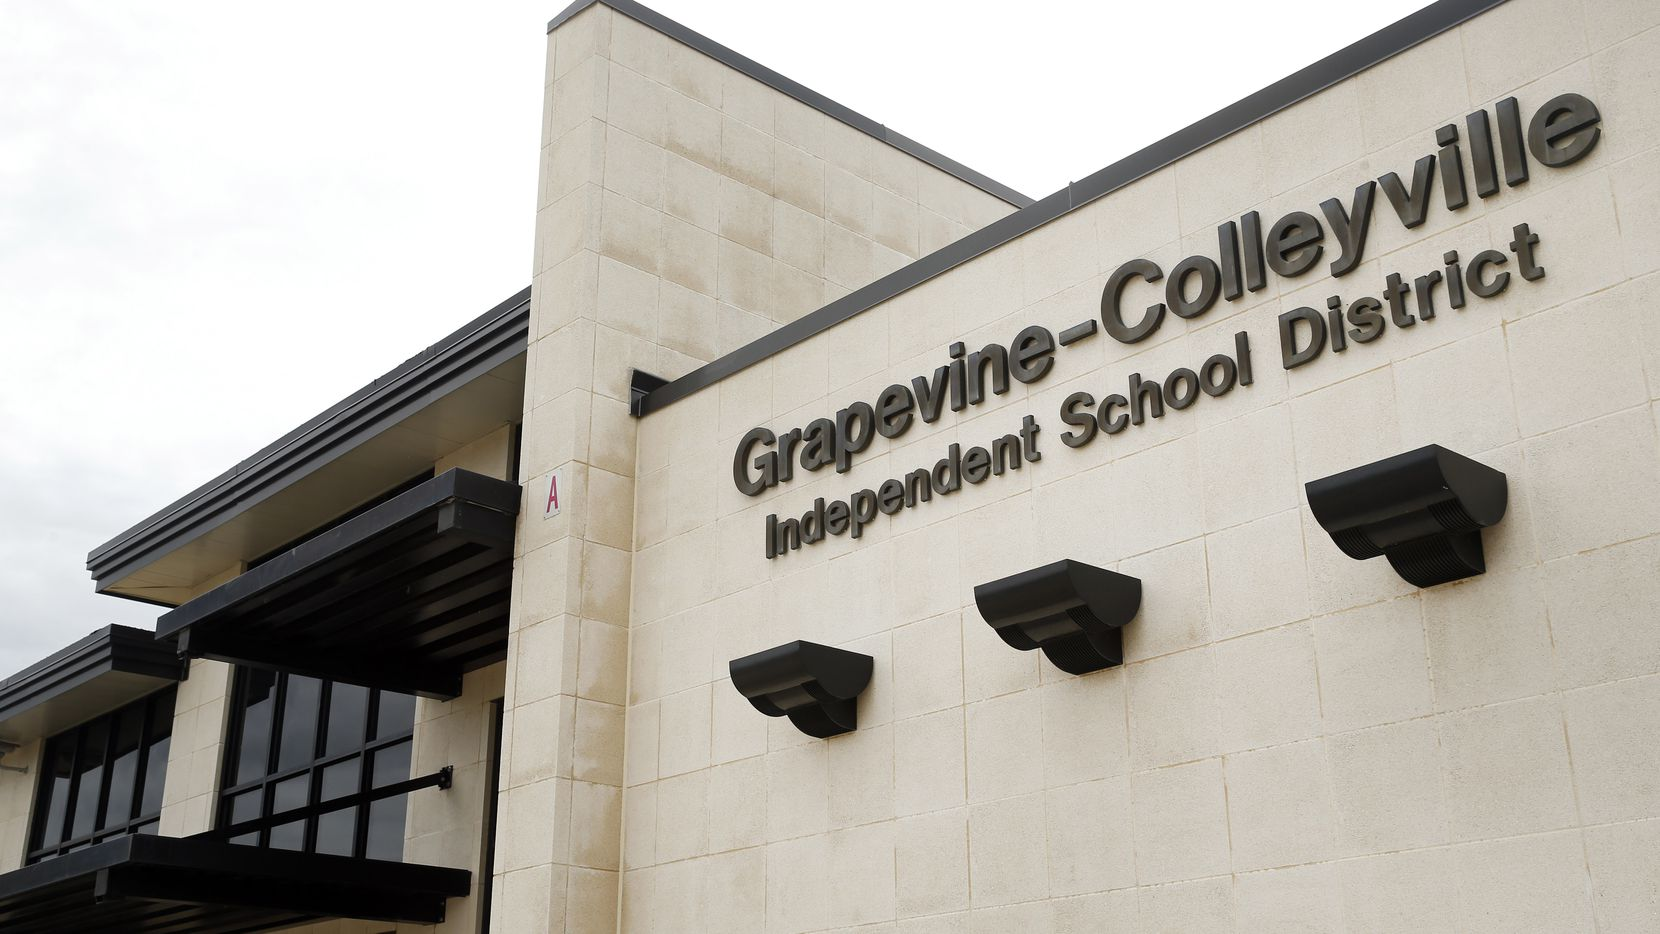 An exterior view of the Grapevine-Colleyville Independent School District headquarters on Ira Woods Ave in Grapevine, Texas, Tuesday, June 23, 2020.